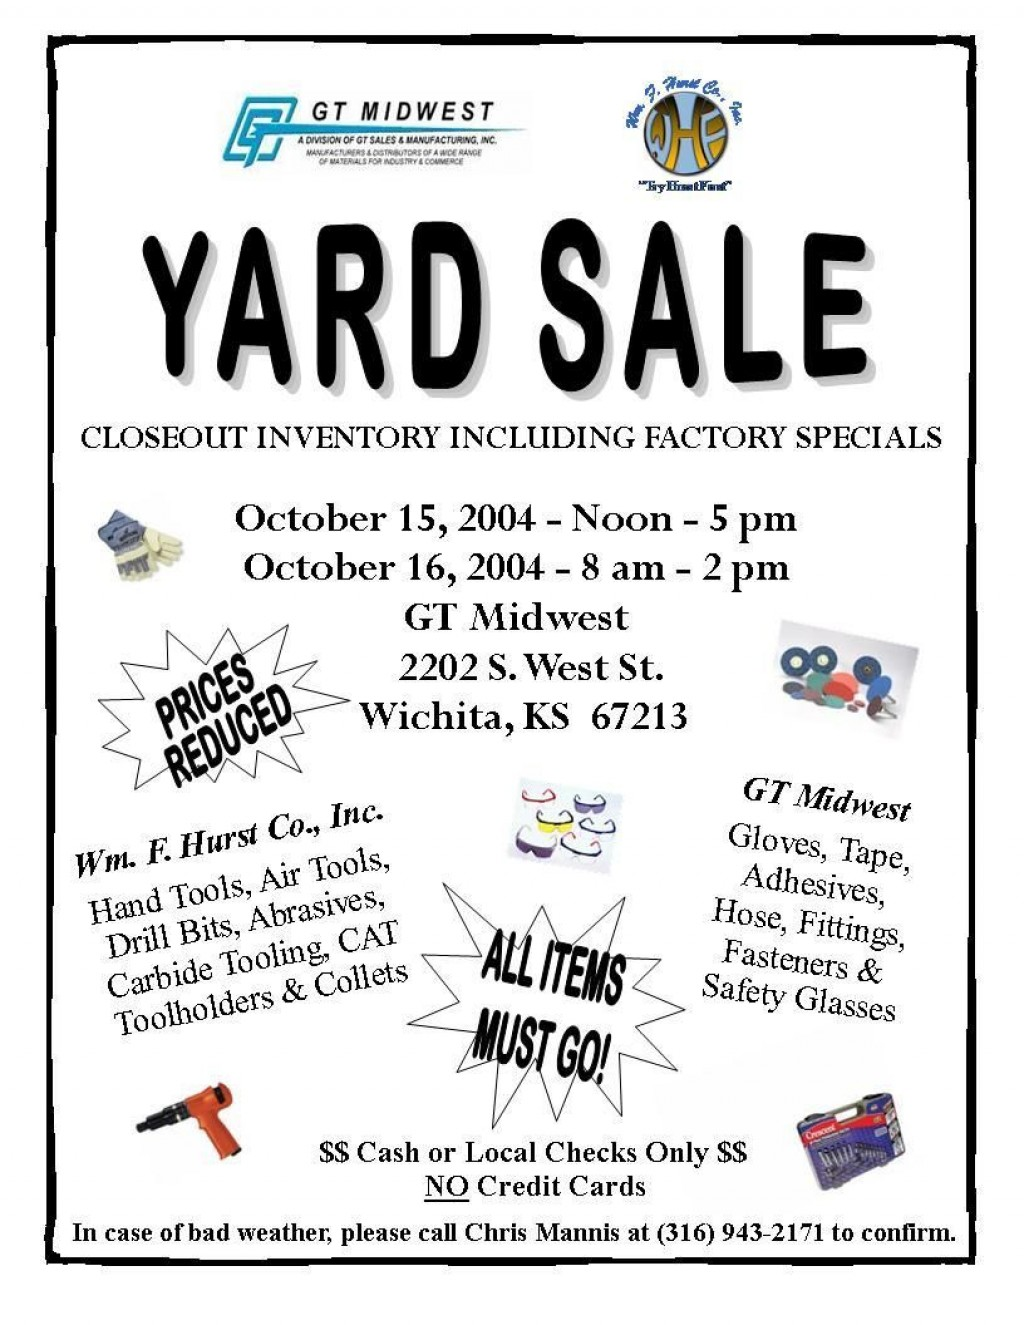 002 Top Yard Sale Flyer Template Sample  Free Garage Microsoft WordLarge